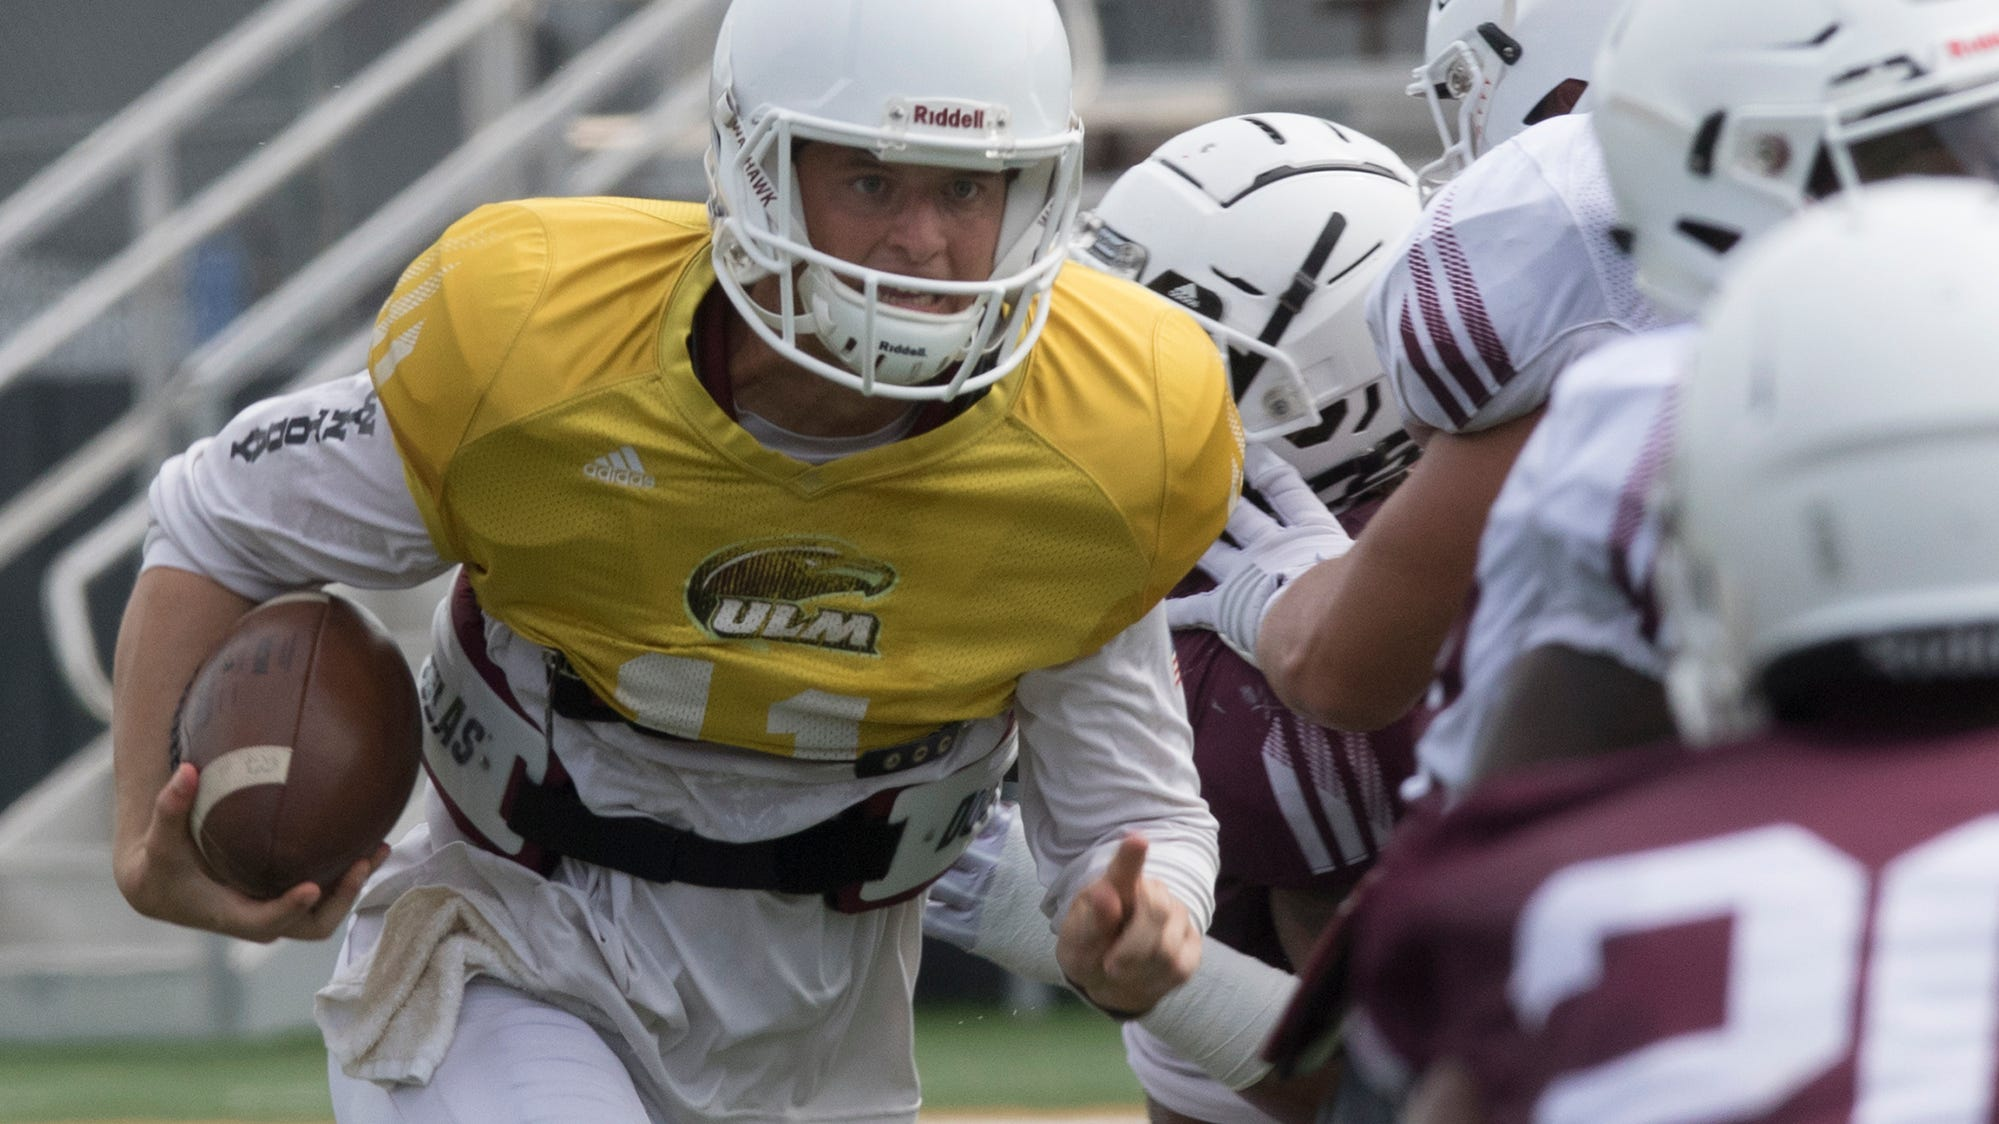 University of Louisiana Monroe held a scrimmage game on August 11 at Malone Stadium in Monroe, La.